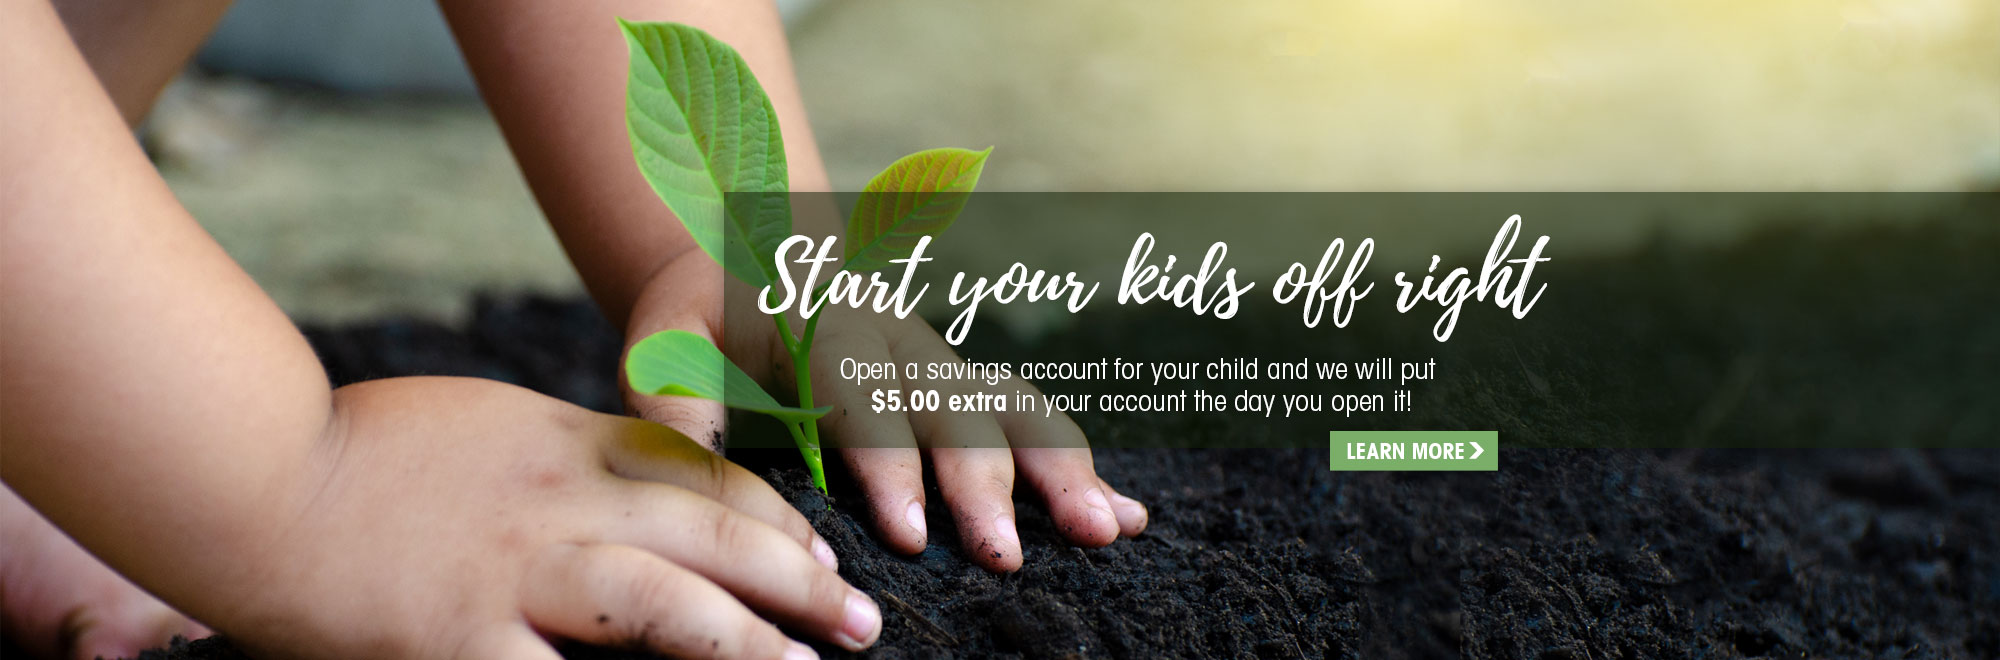 Open a savings account for your child and we'll put and extra $5 in their account the day they open it.